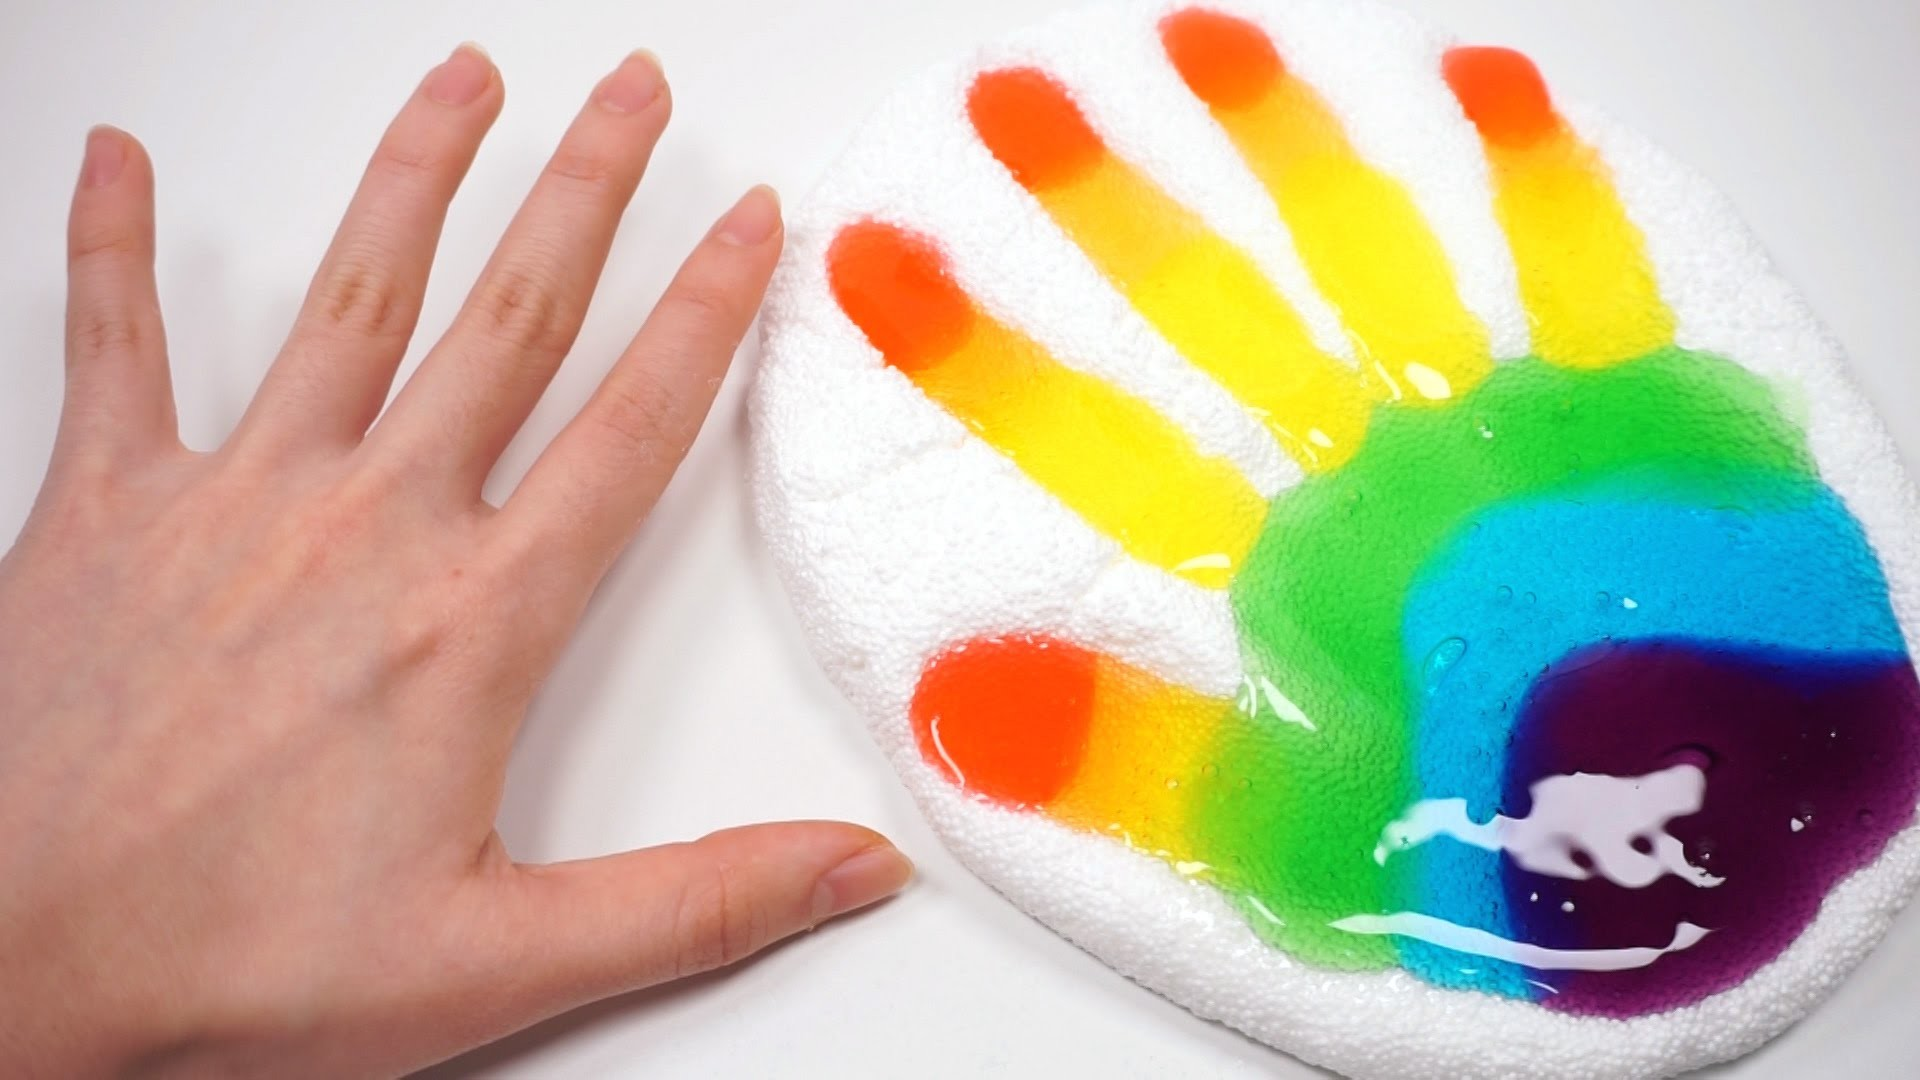 How To Make Colors Hand Finger Jelly Slime DIY Clay Foam Creative for Kids  – YouTube